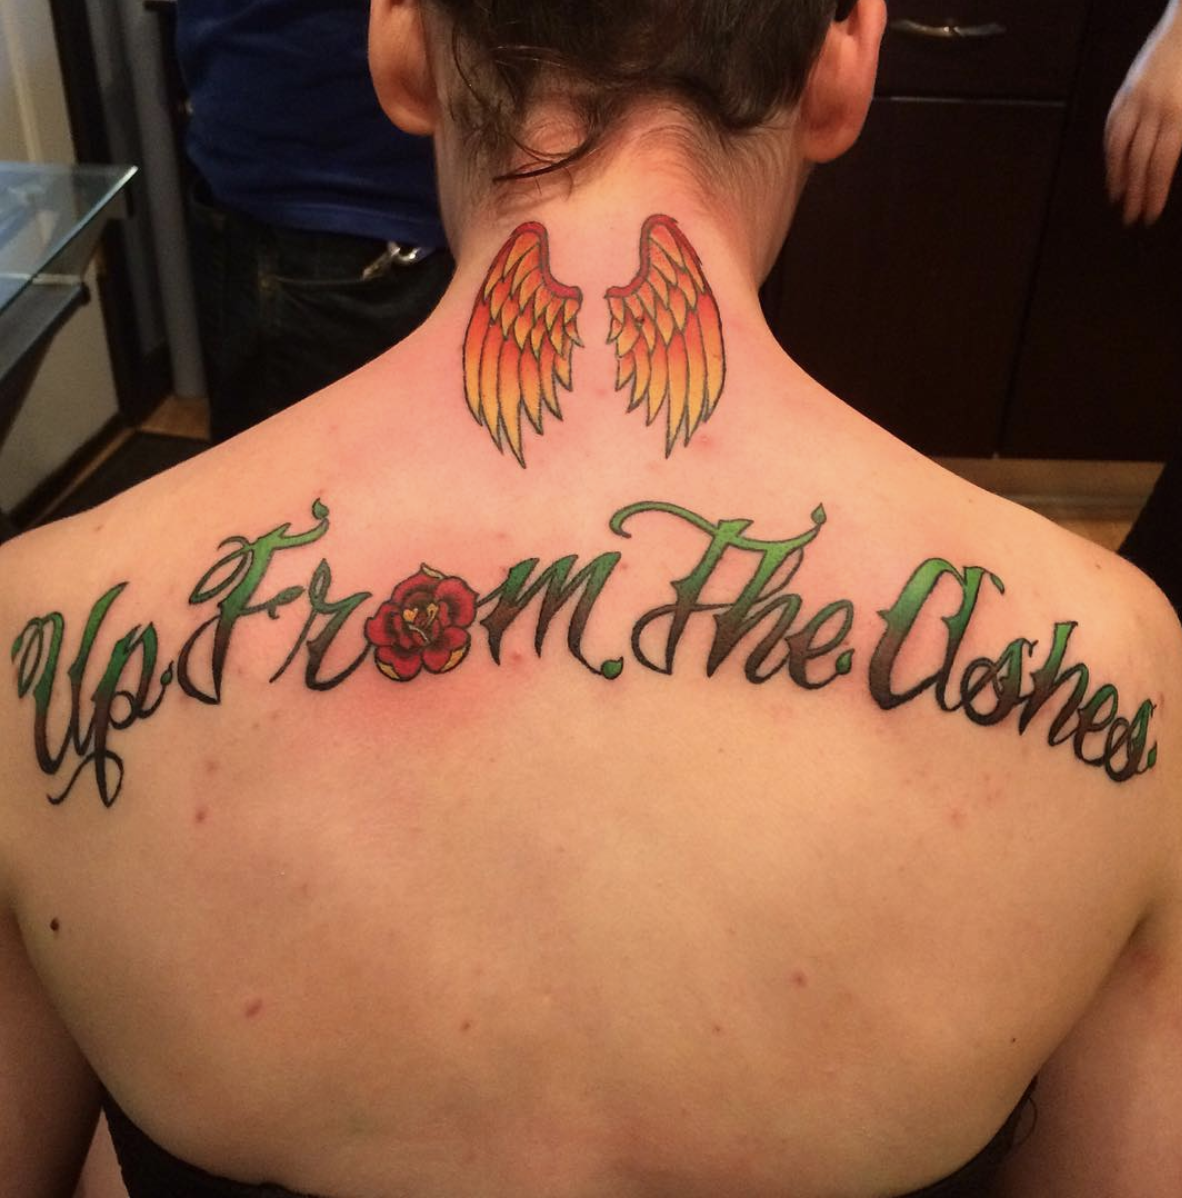 tattoo-back-piece.png